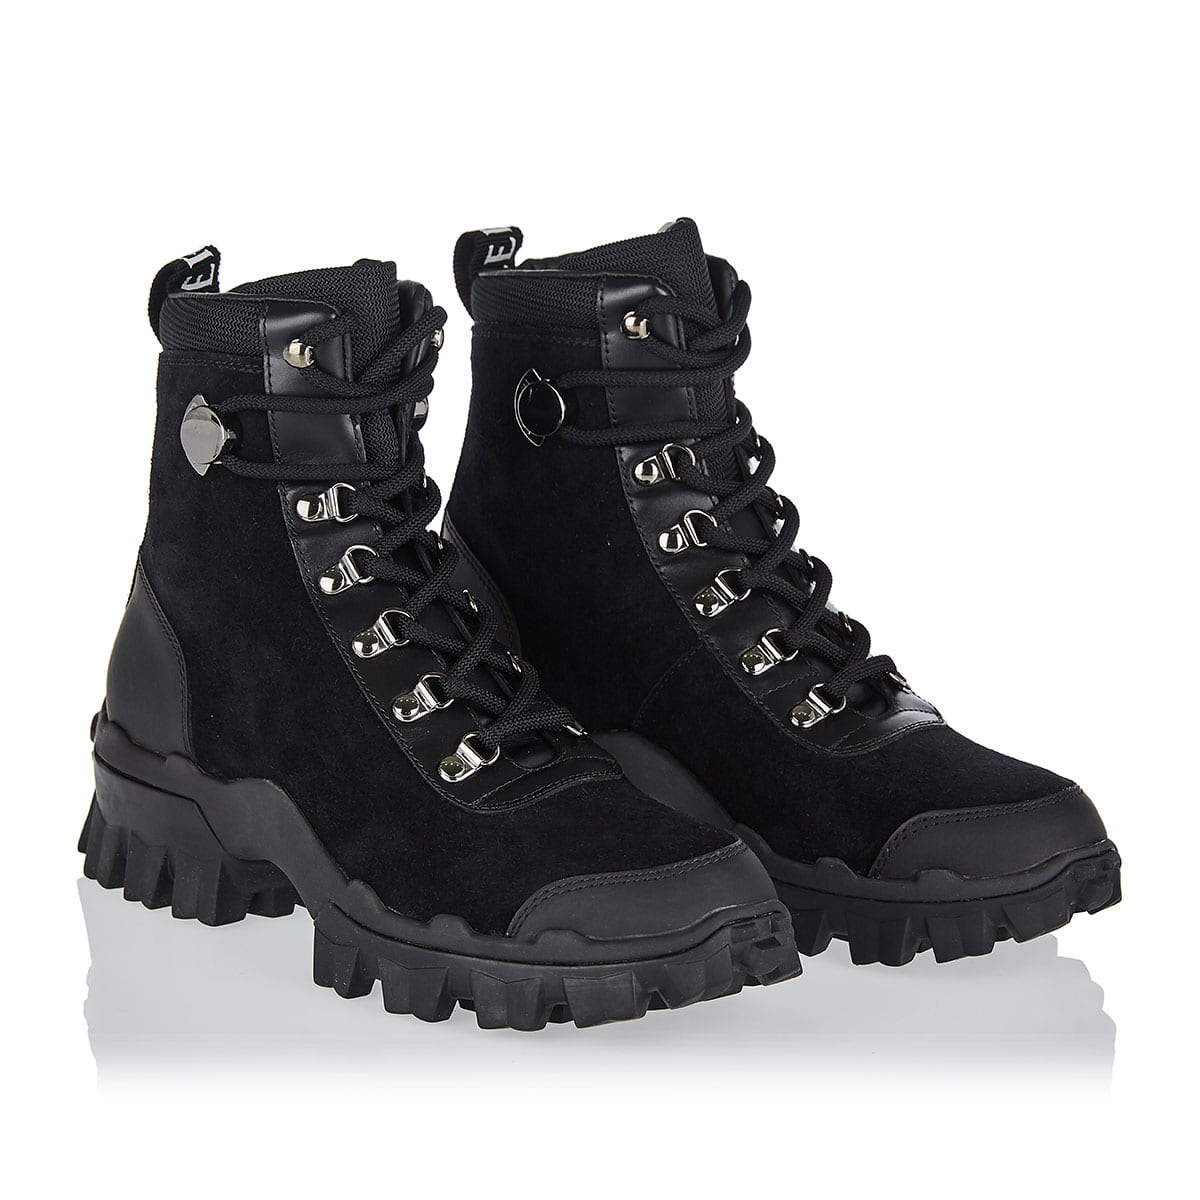 Helis hiking boots